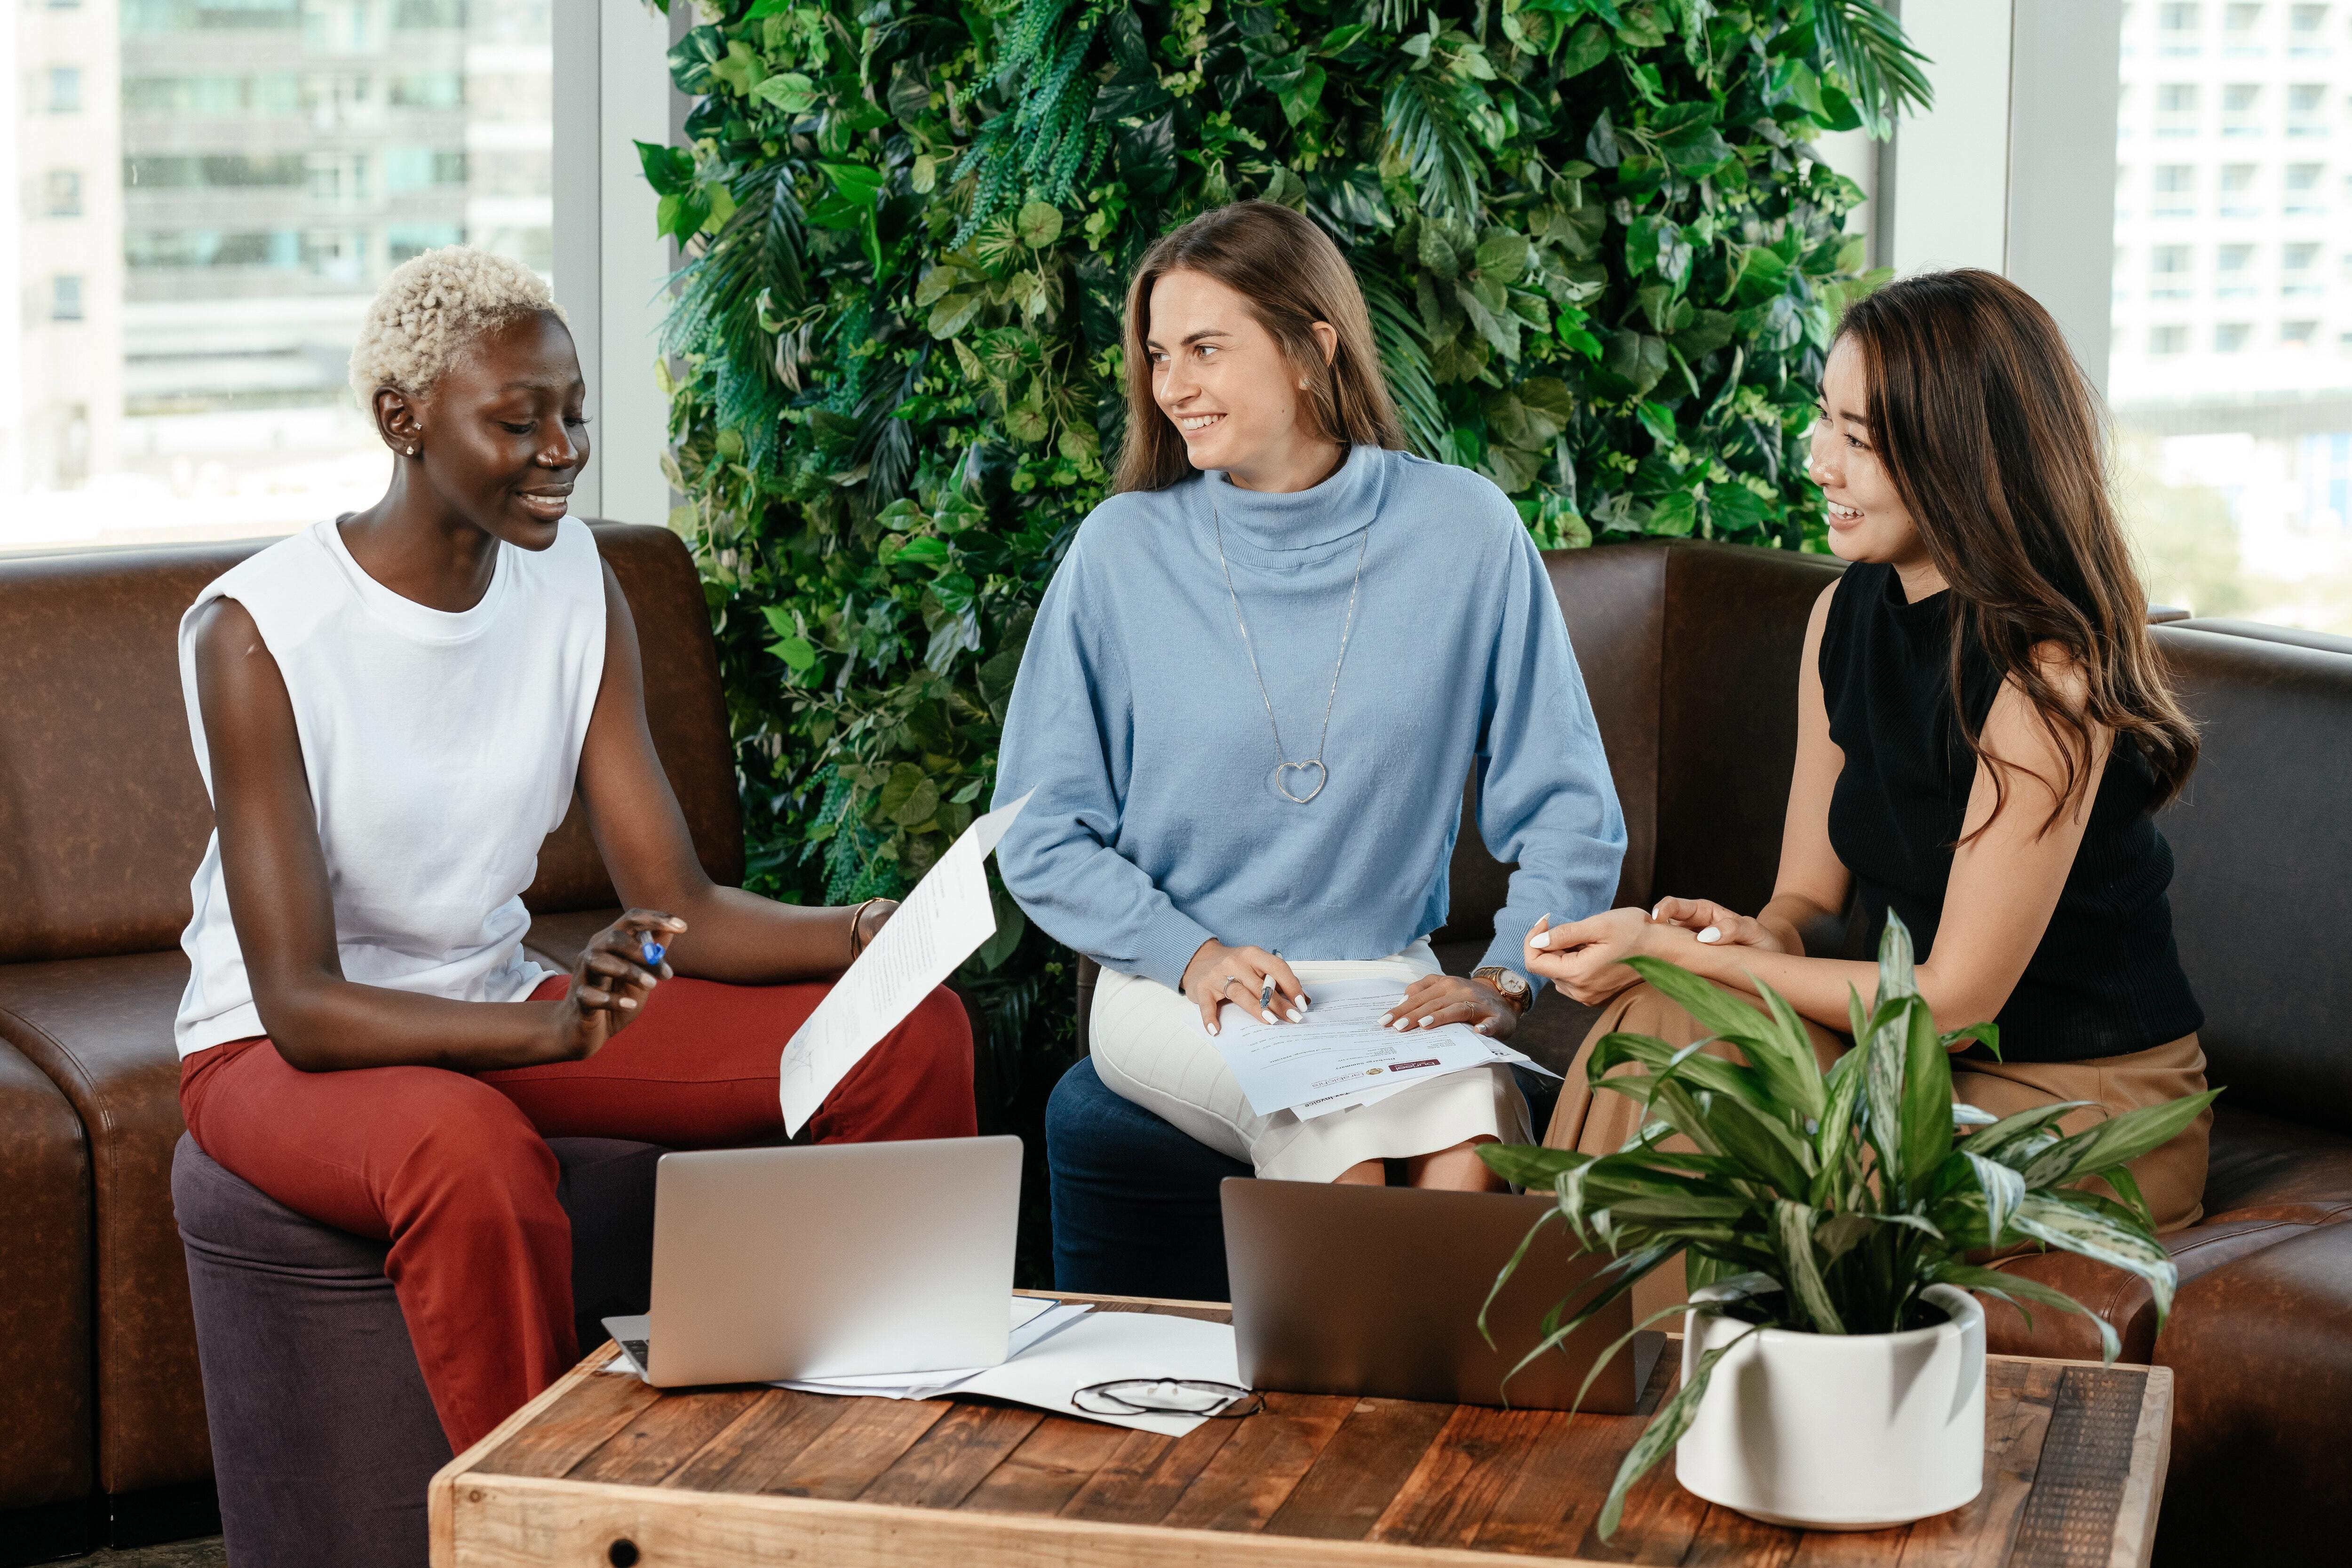 How COVID-19 Has Changed Corporate Wellness